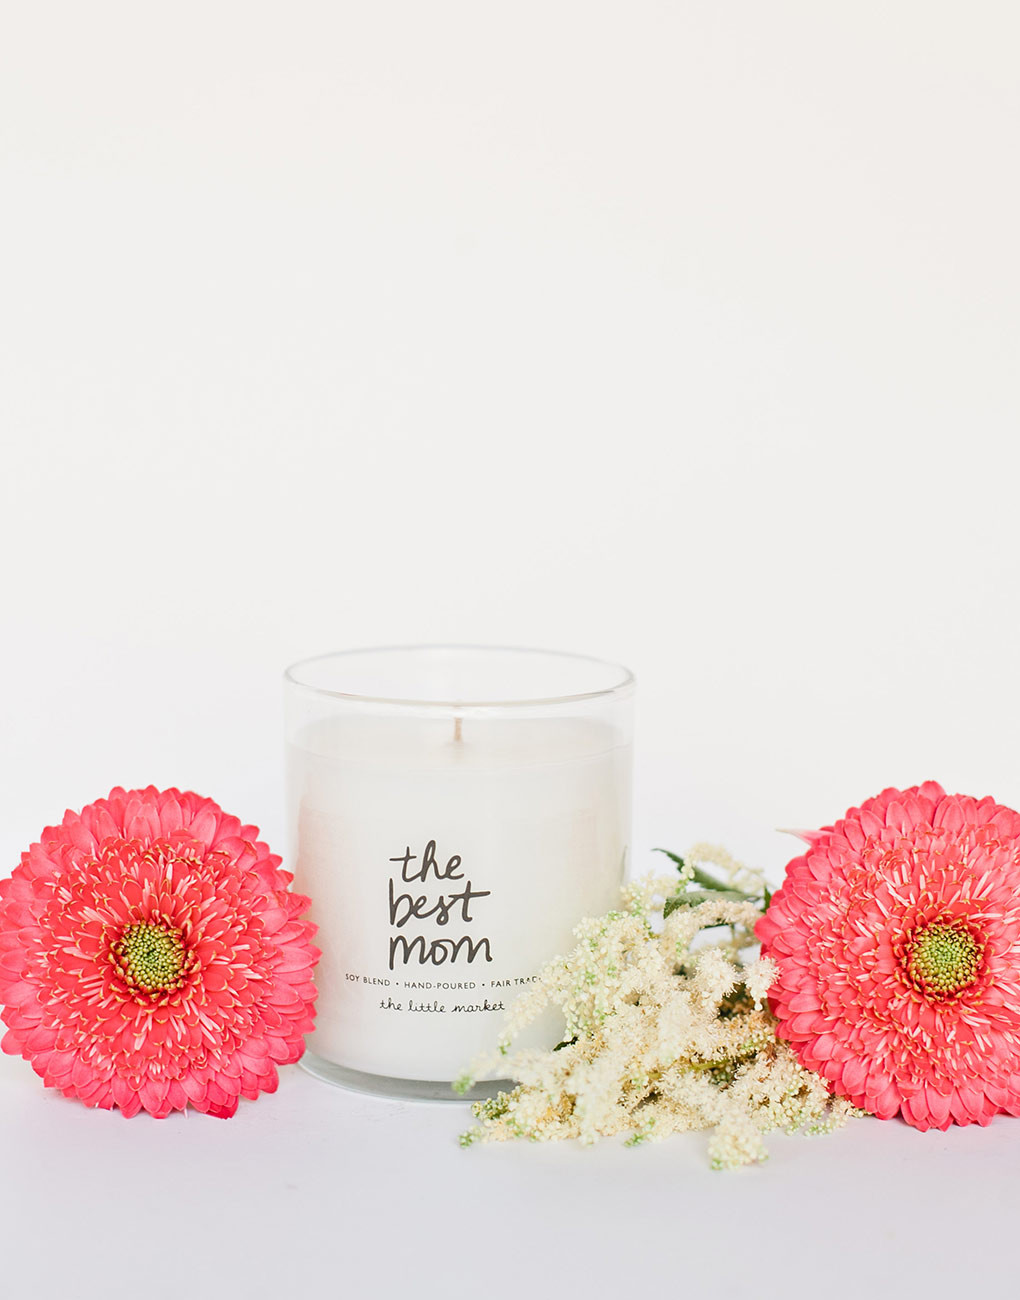 Soy Blend Candle - The Best Mom , The Little Market, $26.00